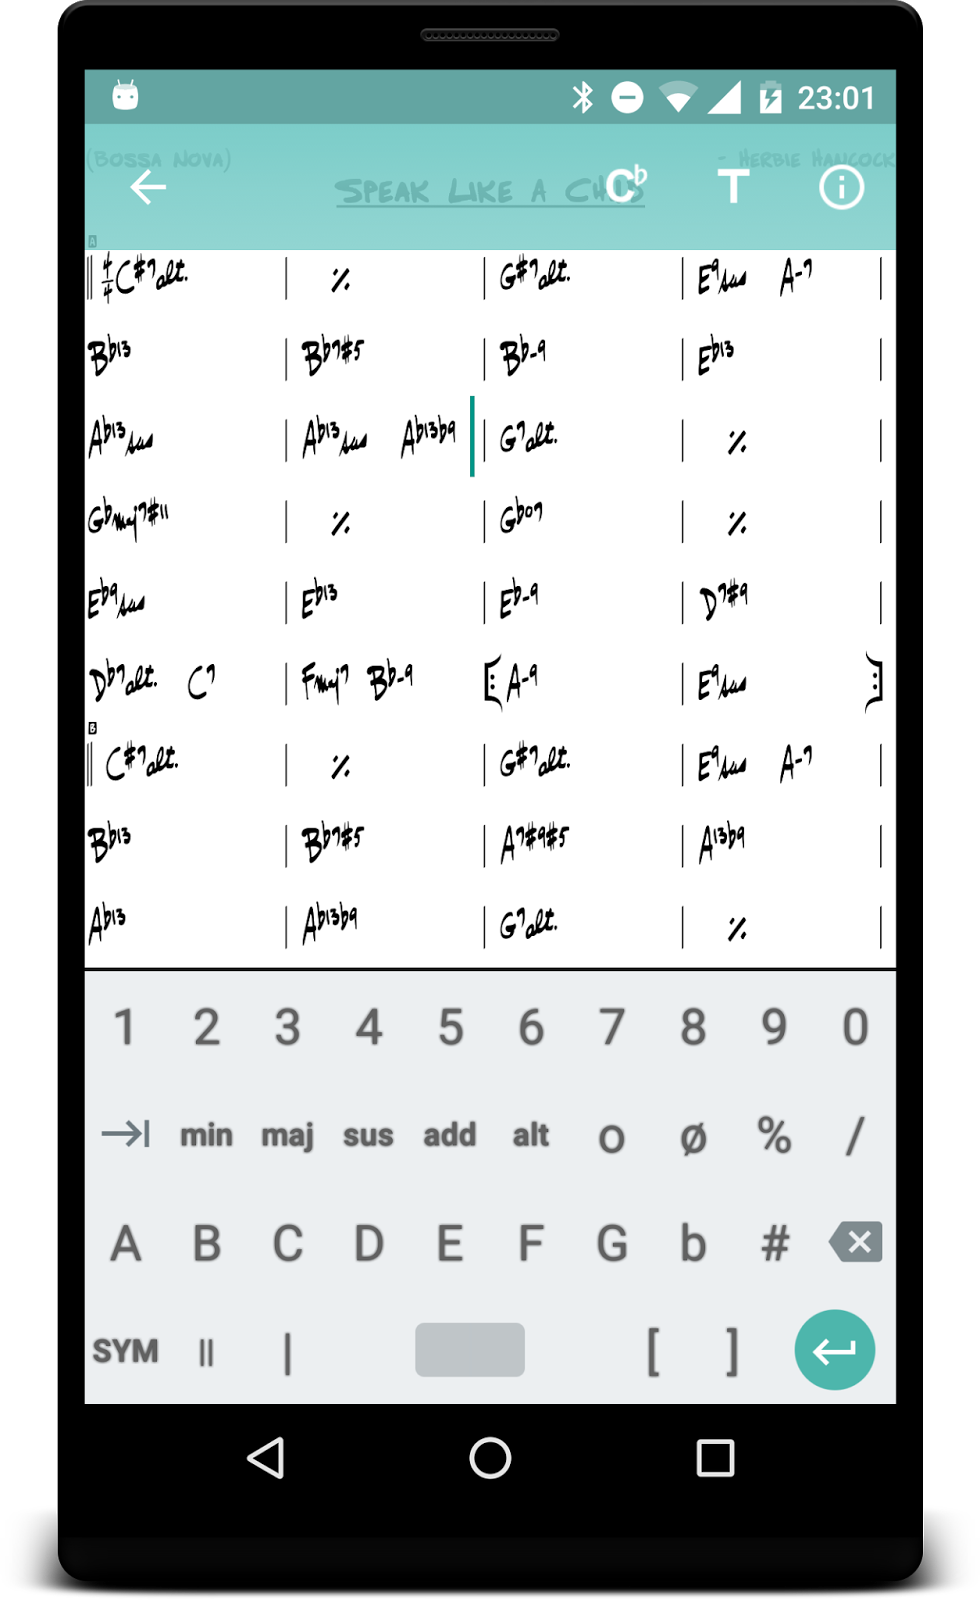 Fakebook chord and lyrics editor skrivarna software with a custom chord and symbol keyboard the editor is quick and easy to use both for small changes and for adding new charts hexwebz Gallery